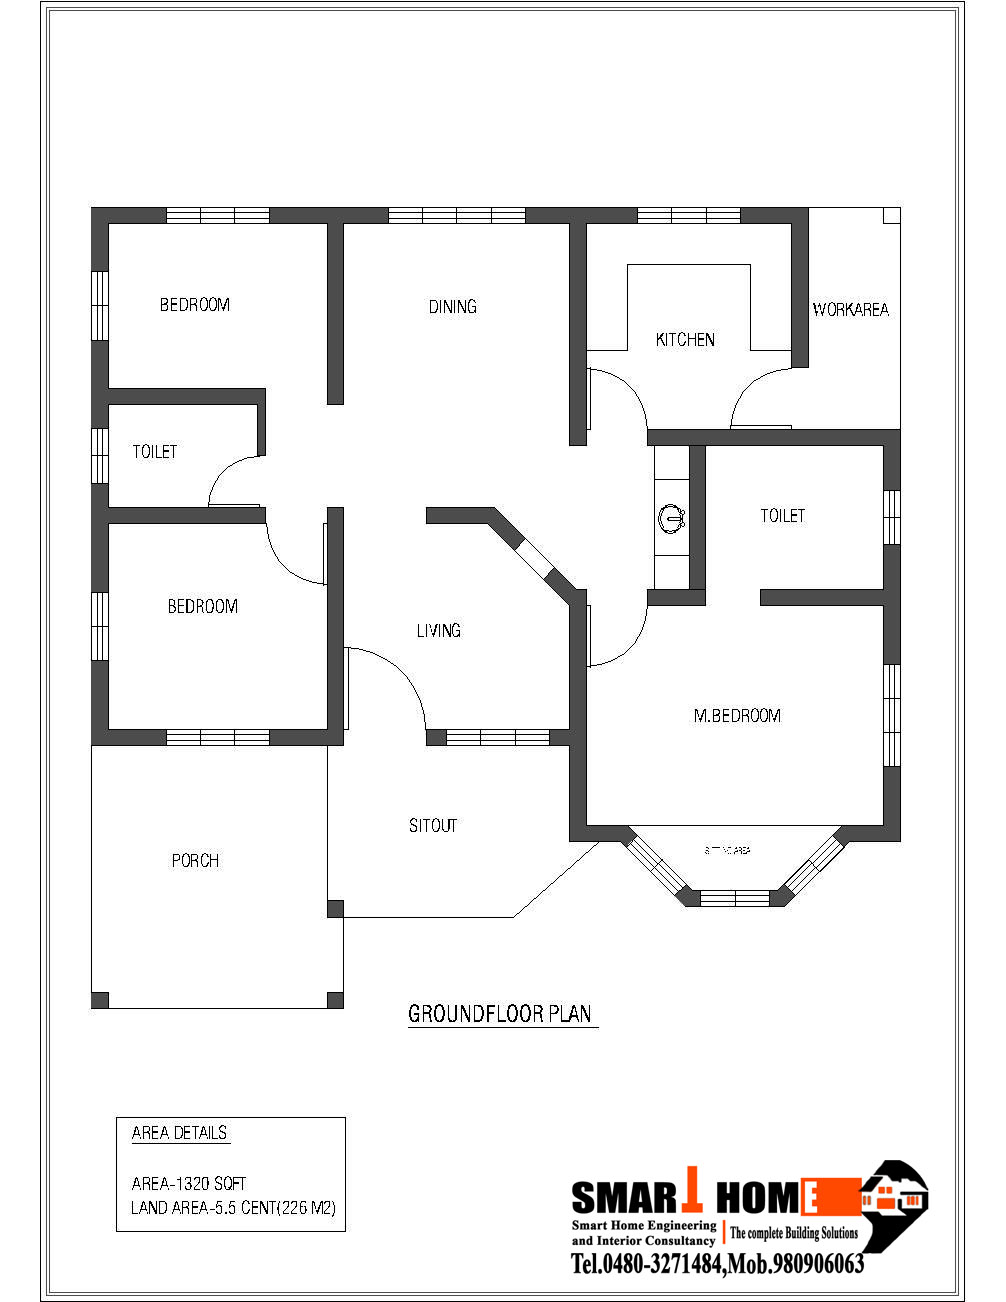 House photos and plans may 2012 for House plans